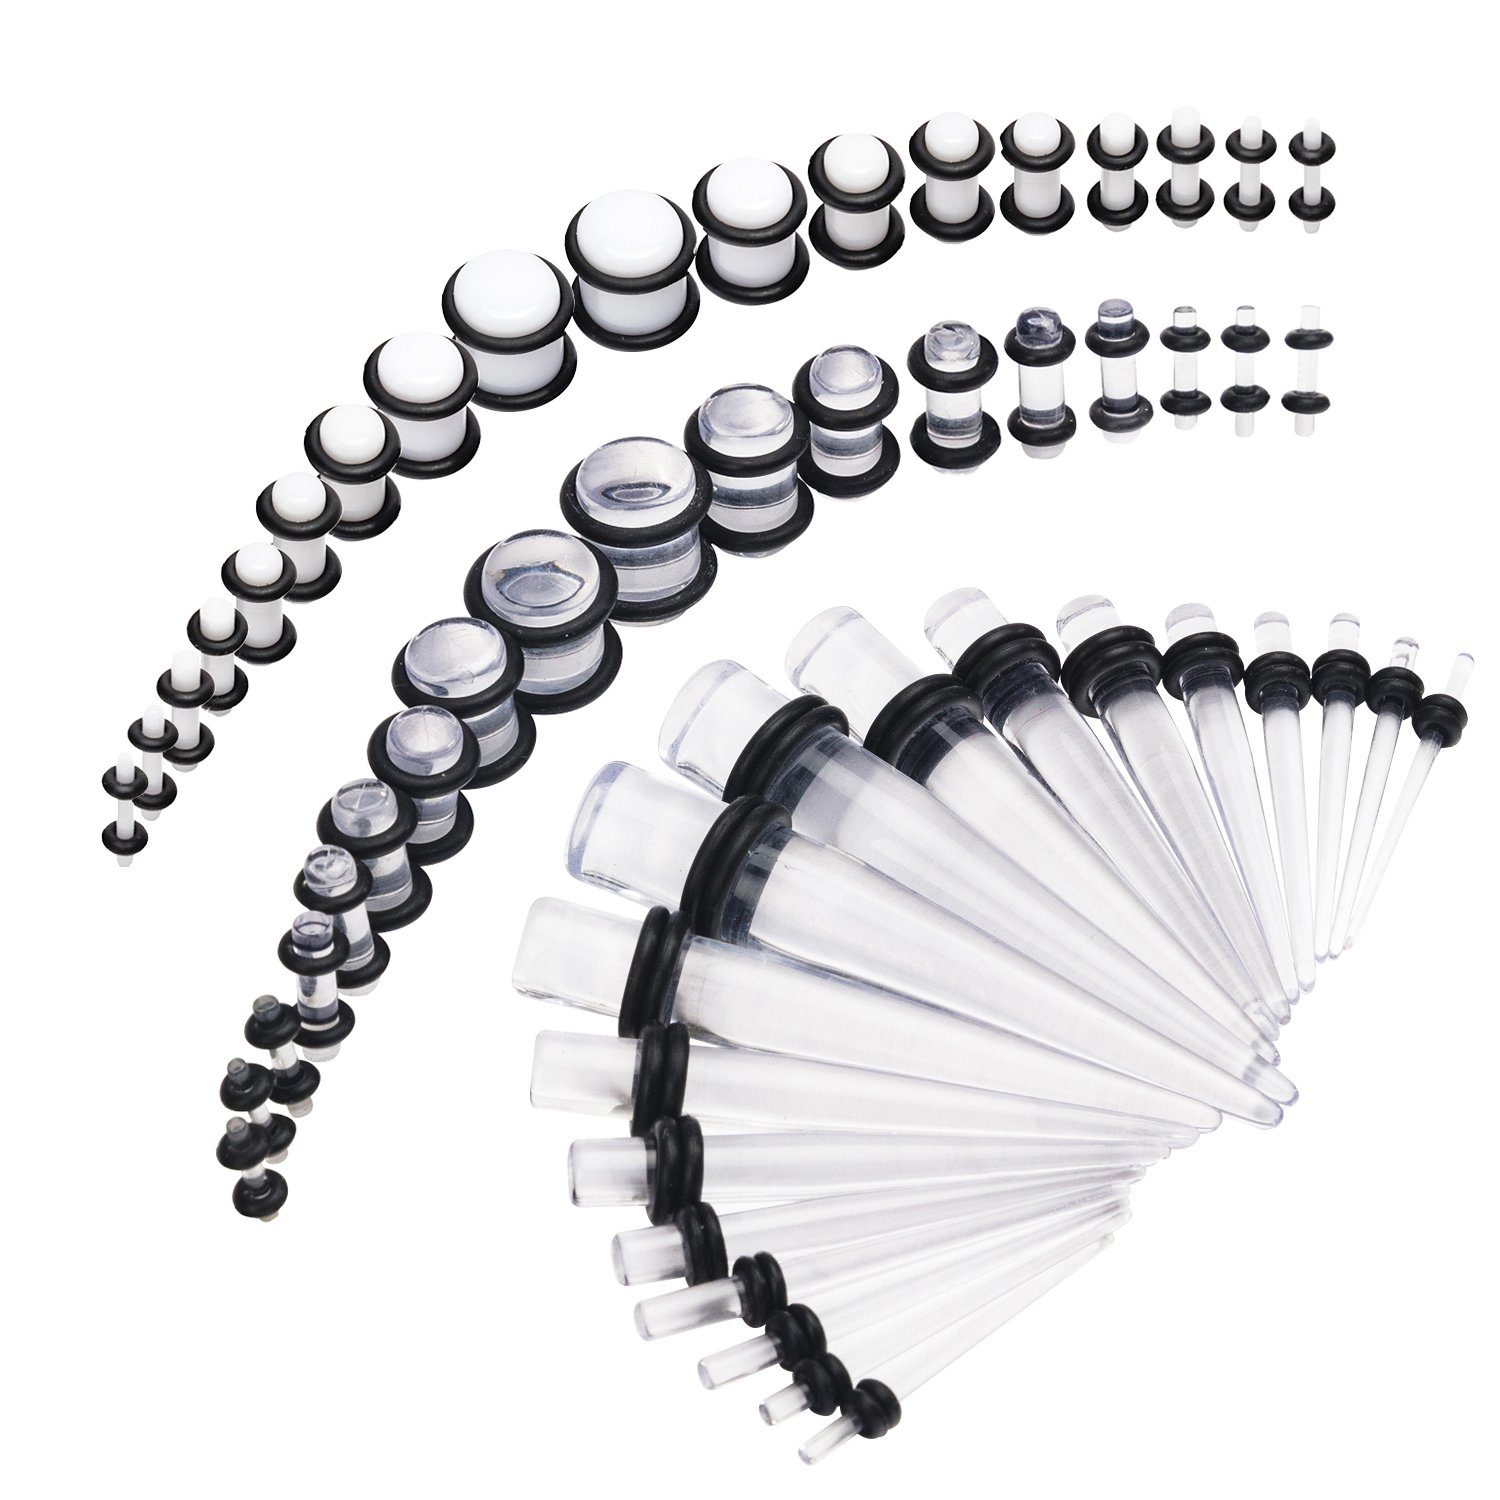 Vcmart 14G-00G 54pcs Acrylic Ear Stretching Kit Tapers & Plugs Body Piercing Jewelry DRK17602